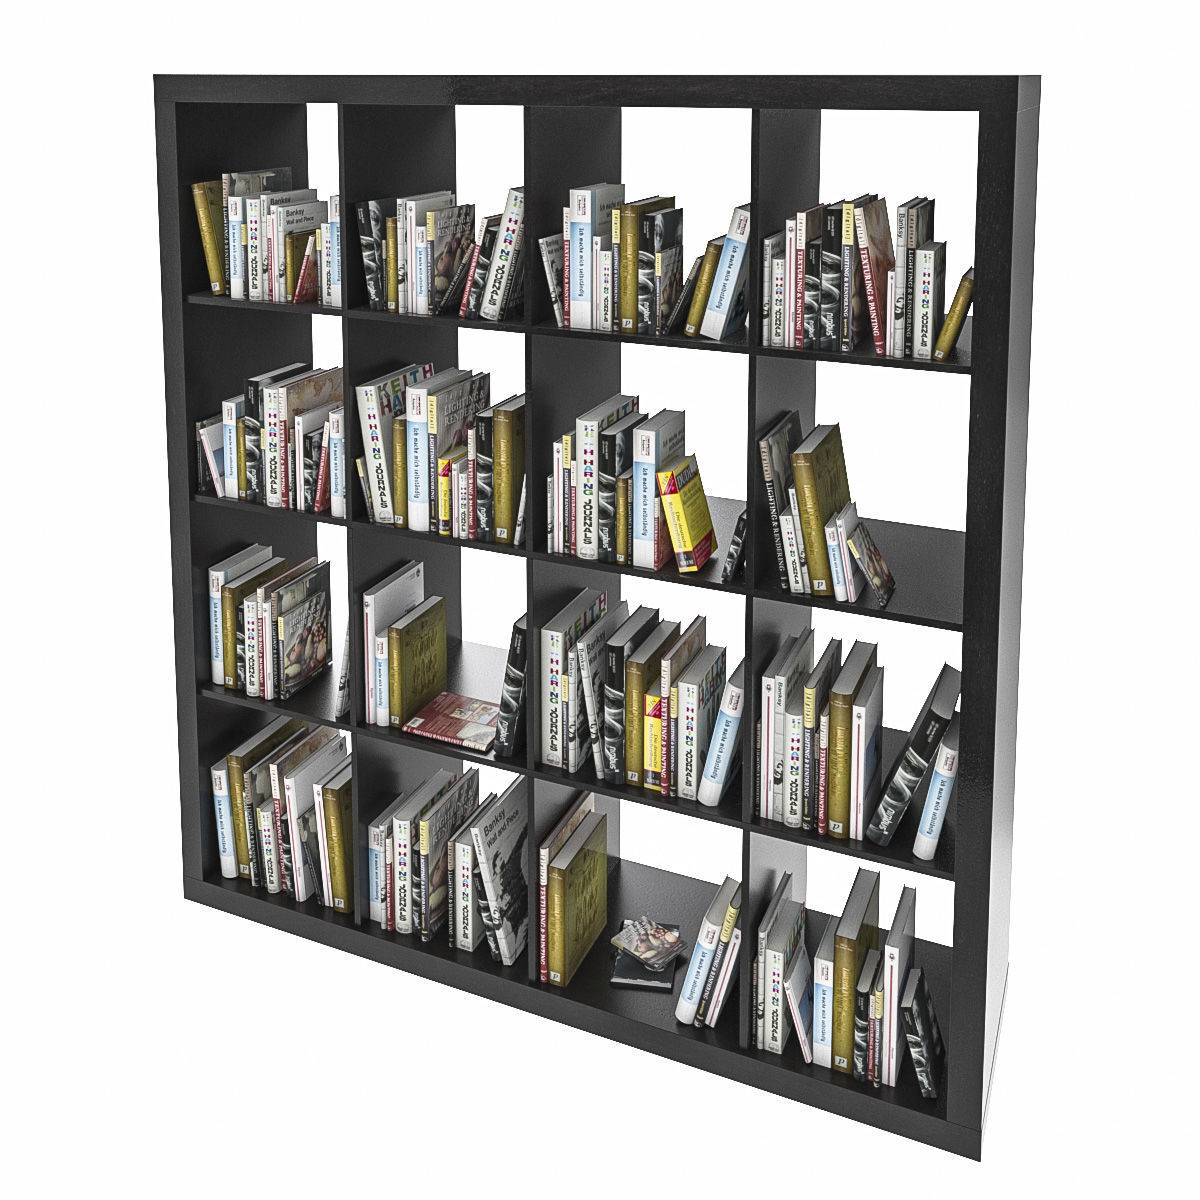 Expedit shelf with books